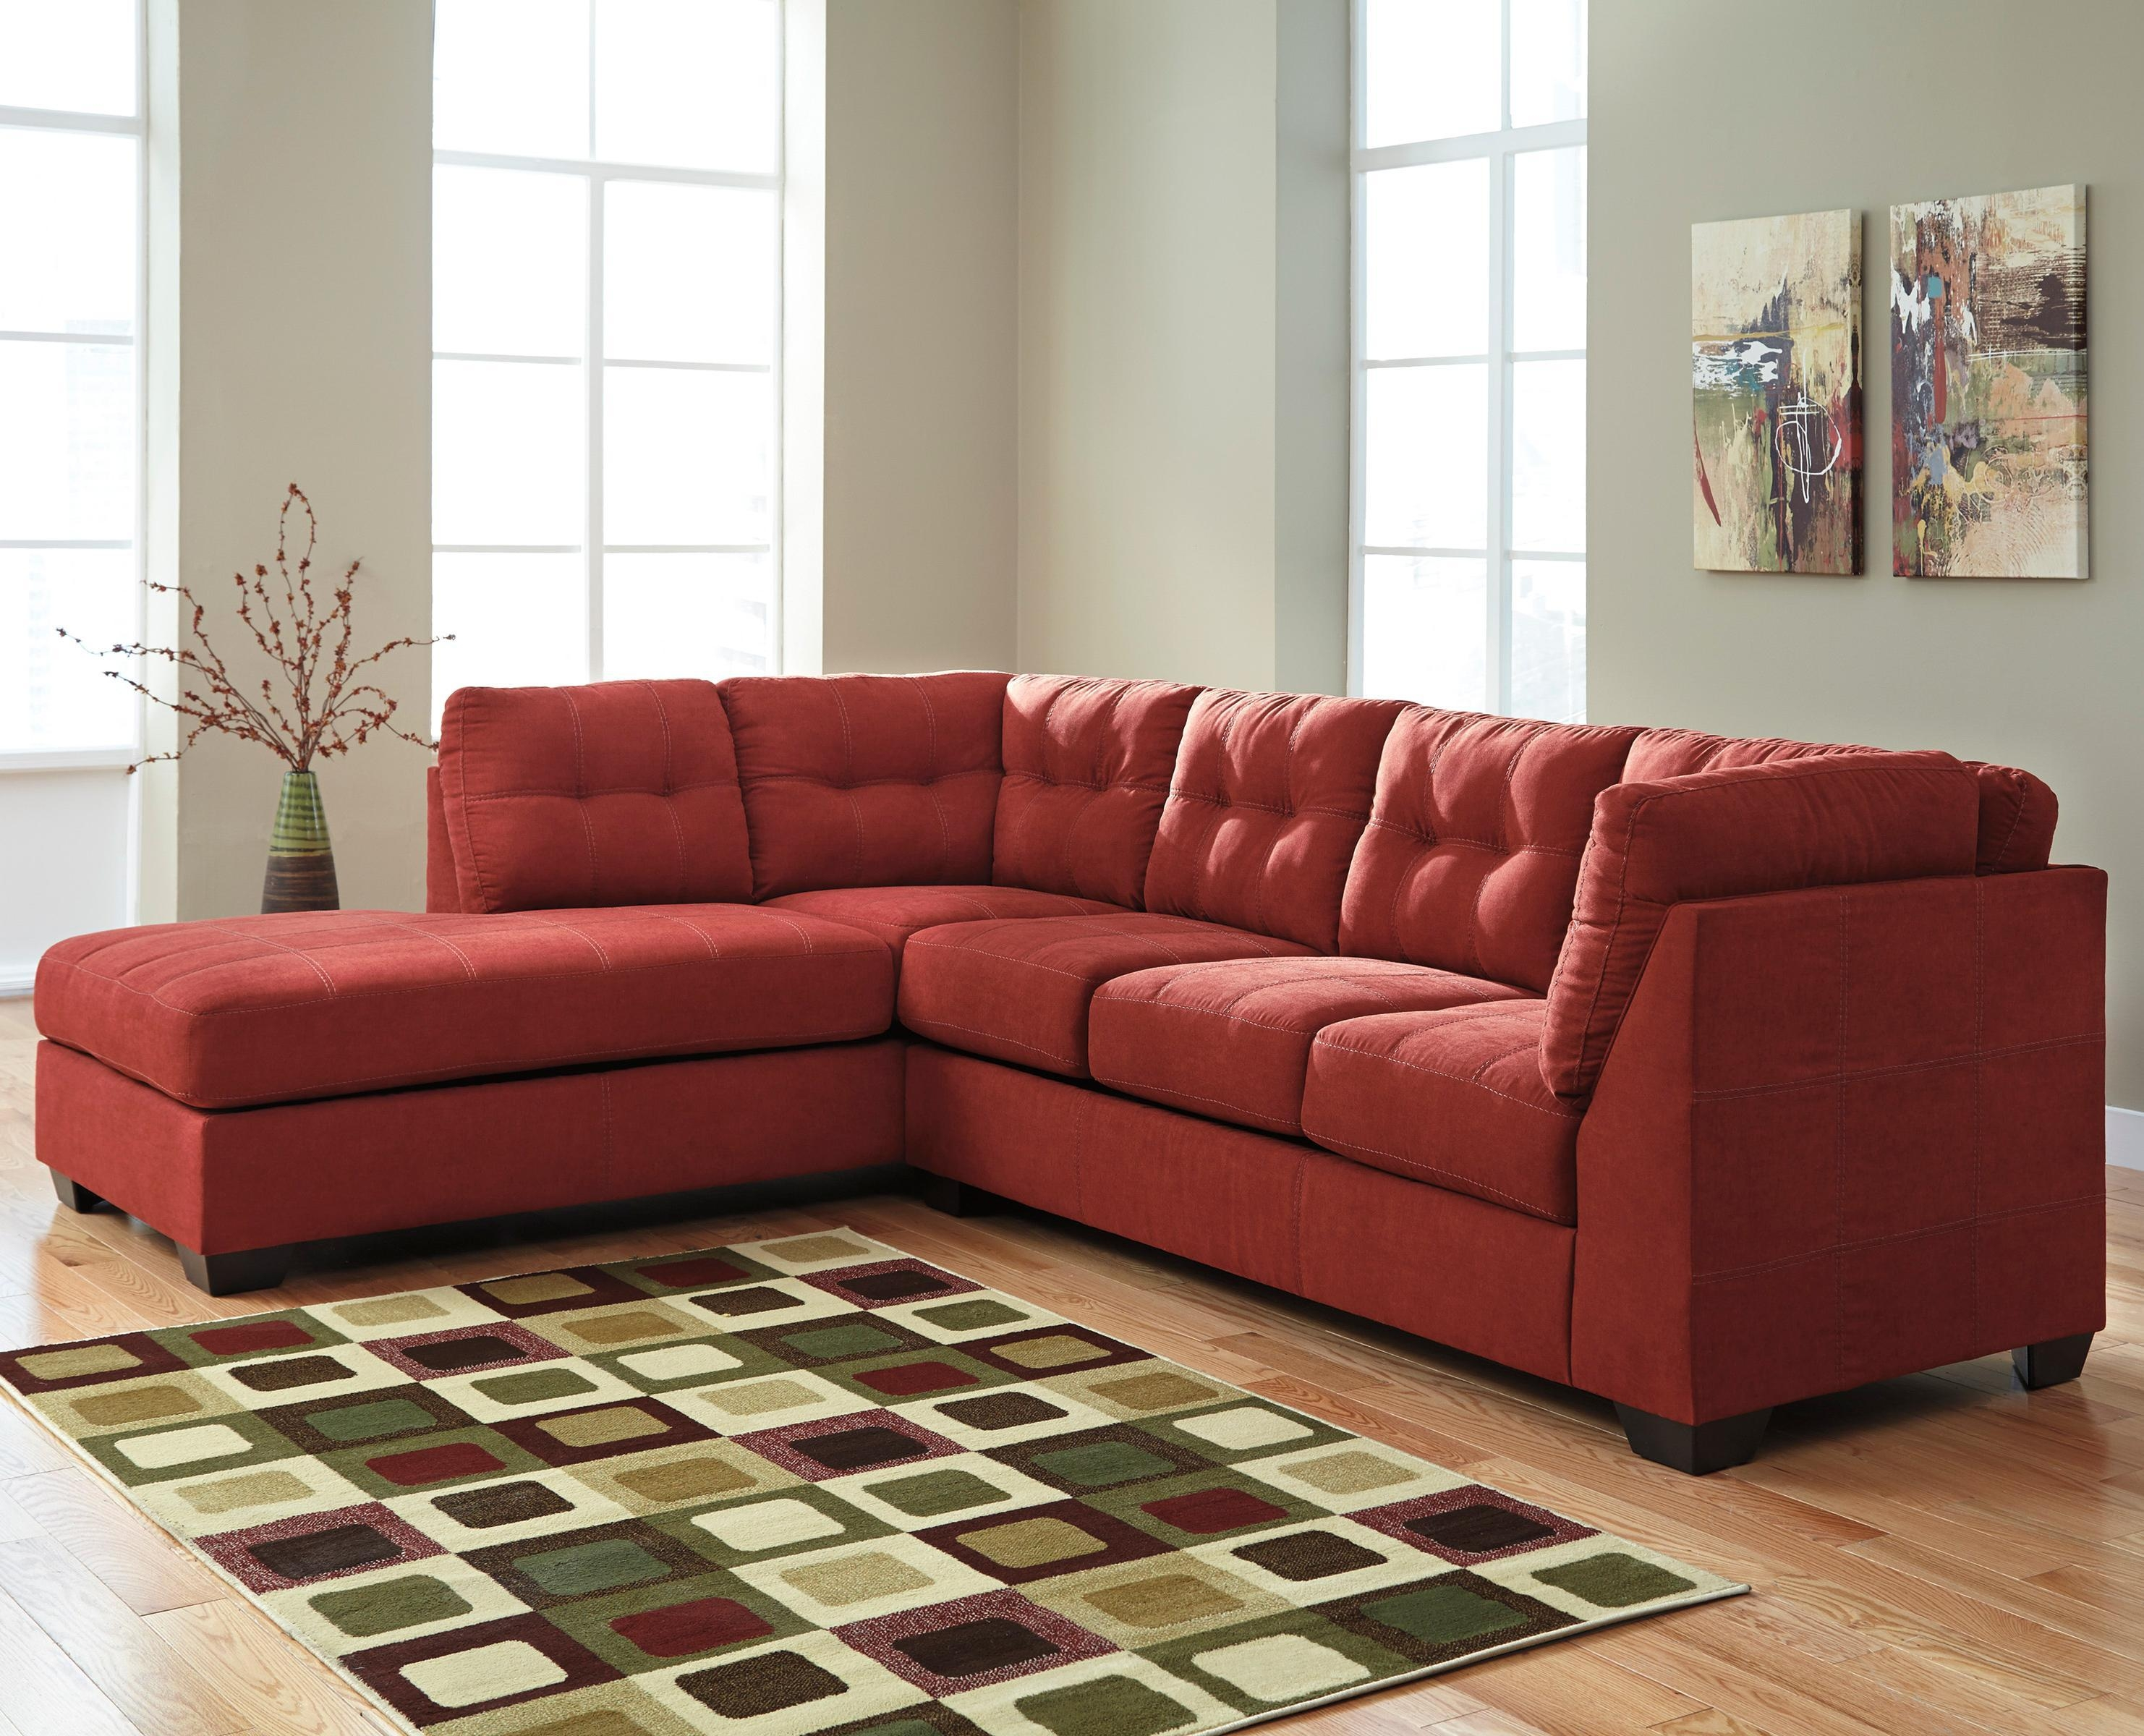 Benchcraft Maier – Sienna 2 Piece Sectional With Left Chaise With Regard To Sectional Sofa With 2 Chaises (View 8 of 20)